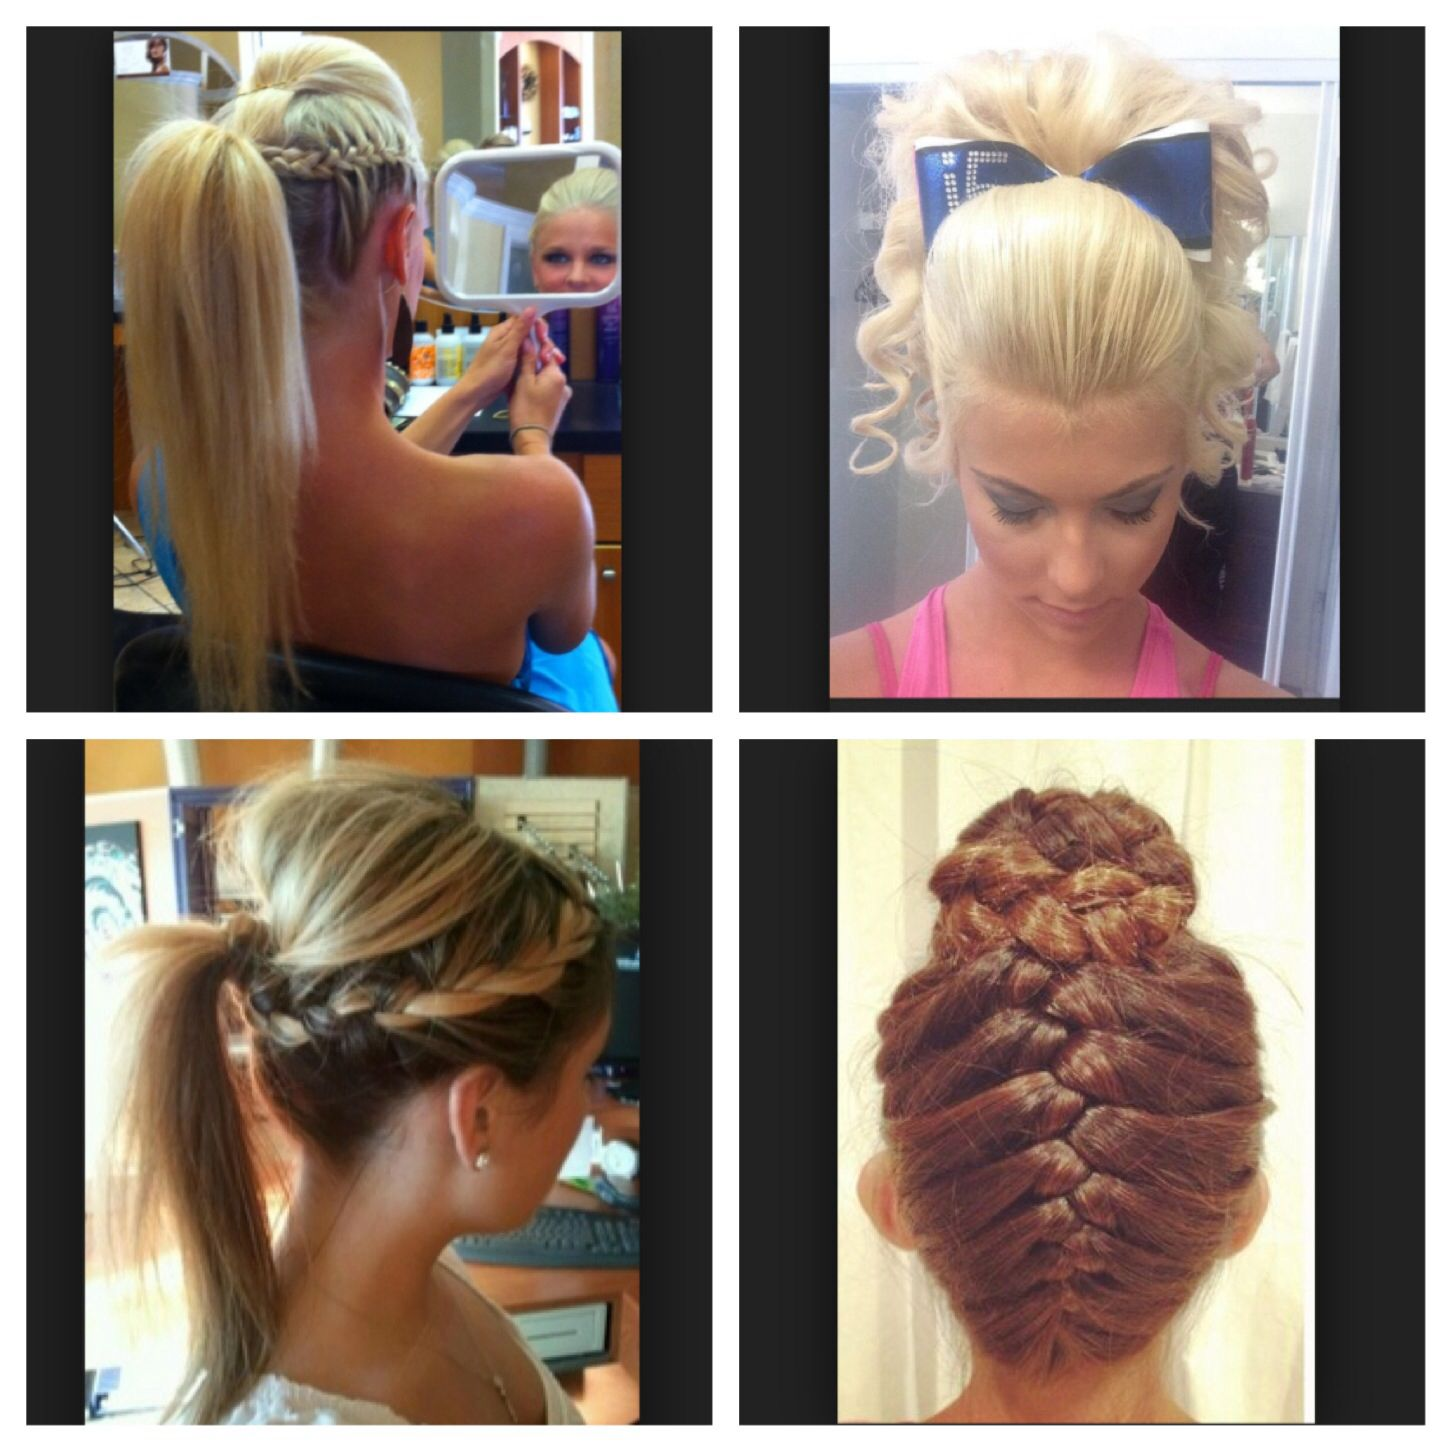 cheering competition hair styles | hair | competition hair